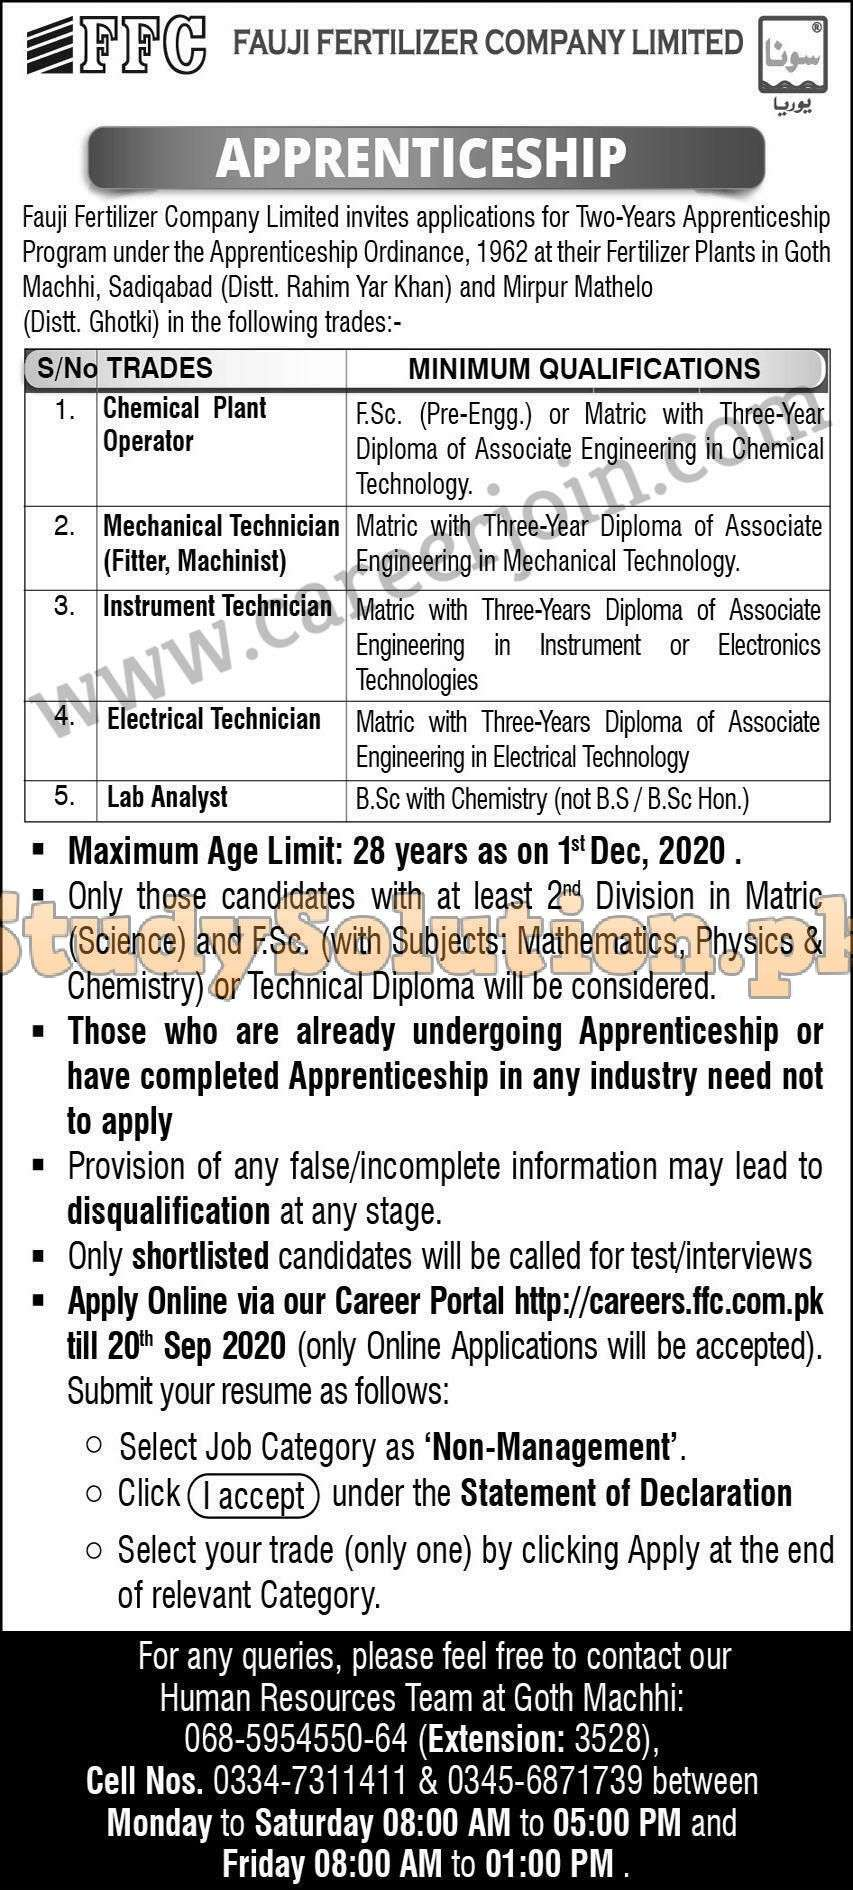 FFC Fauji Fertilizer Company Limited Apprenticeship 2020